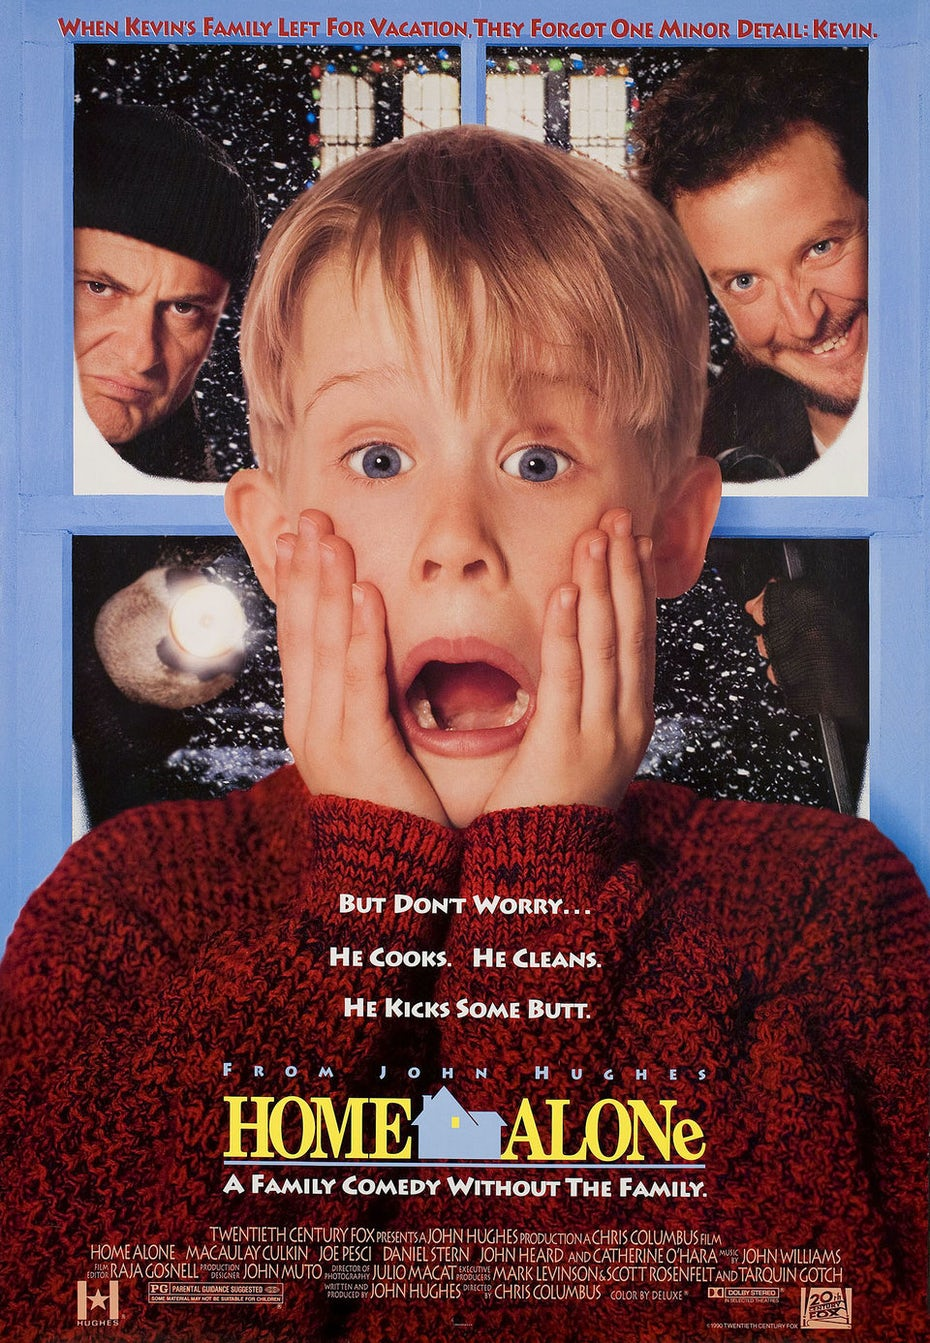 Home Alone Home Alone expressionism influenced poster